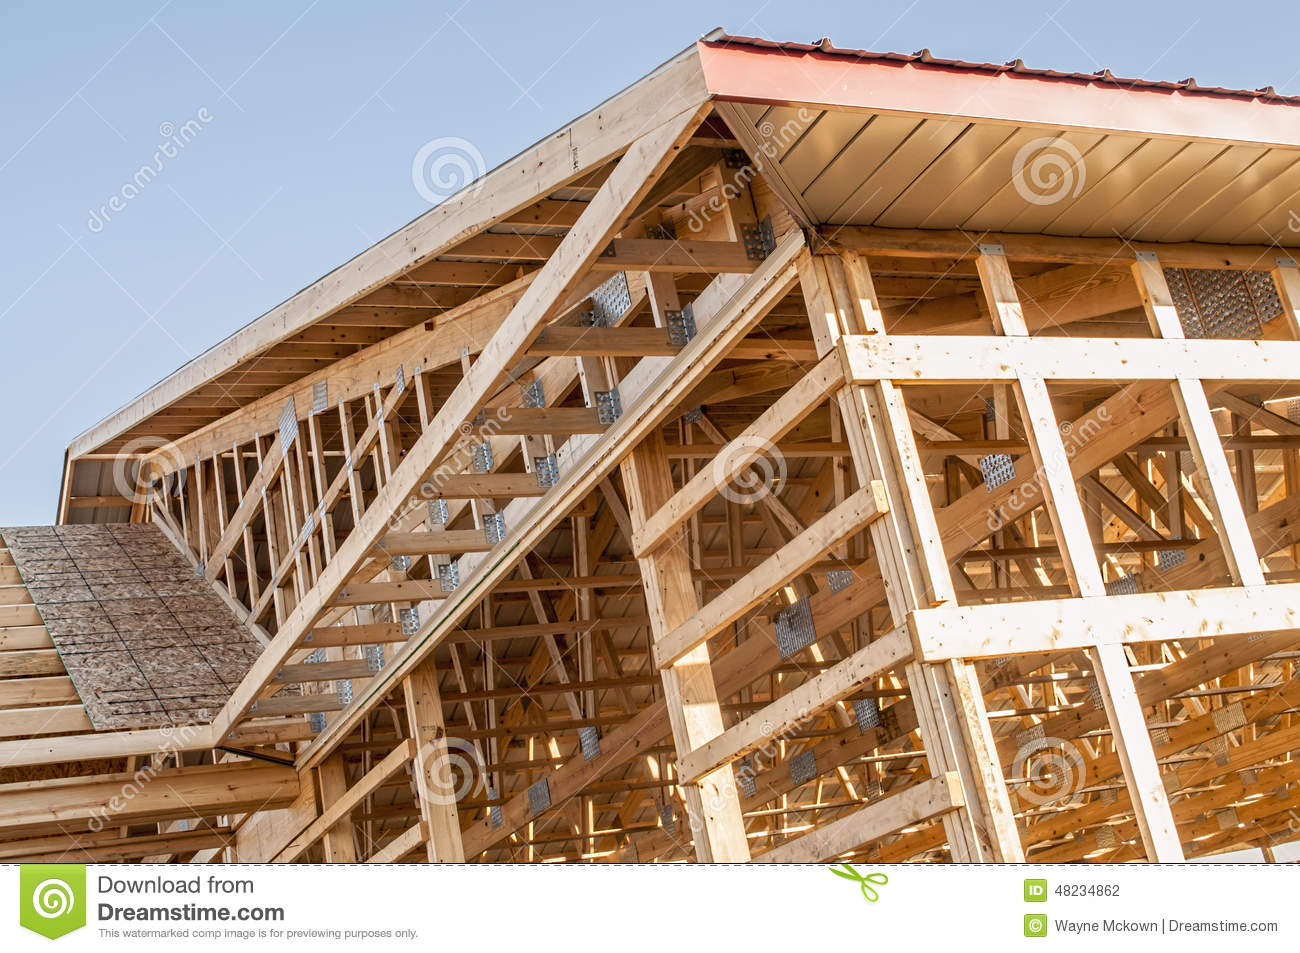 how to build a wood framed tower